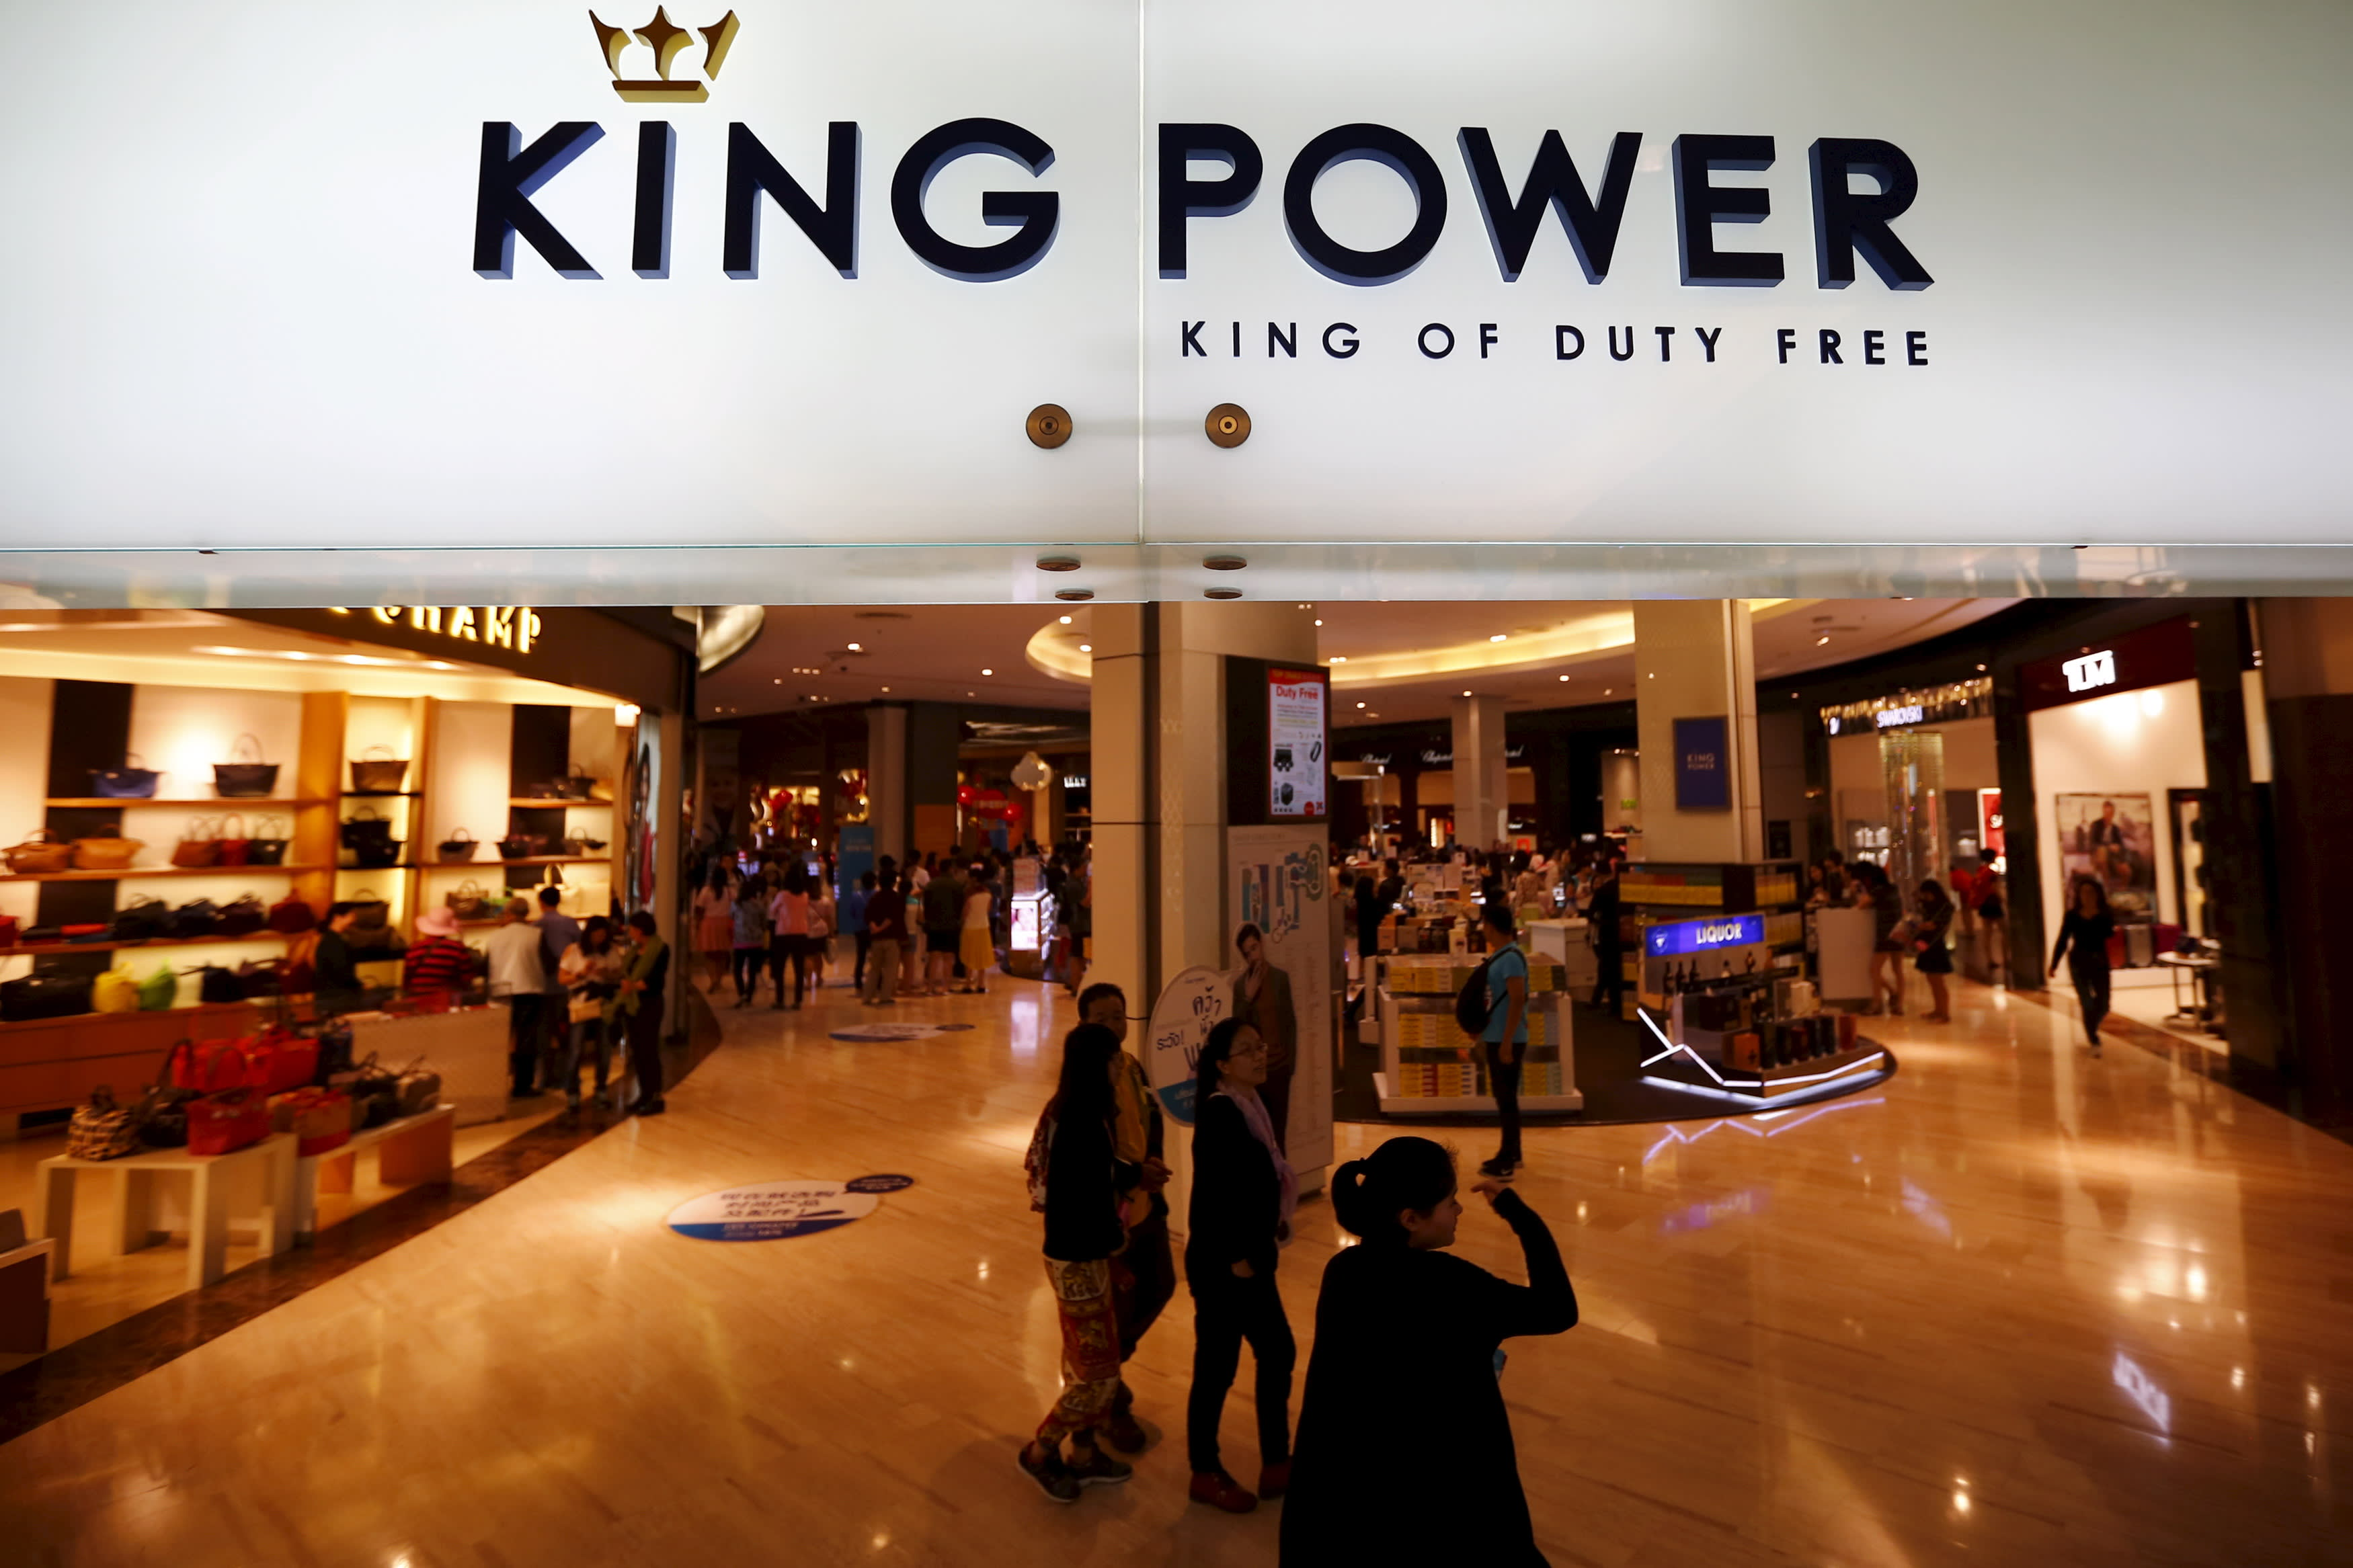 97f1532421bc99 Thailand's King Power wins bid to continue duty-free monopoly ...